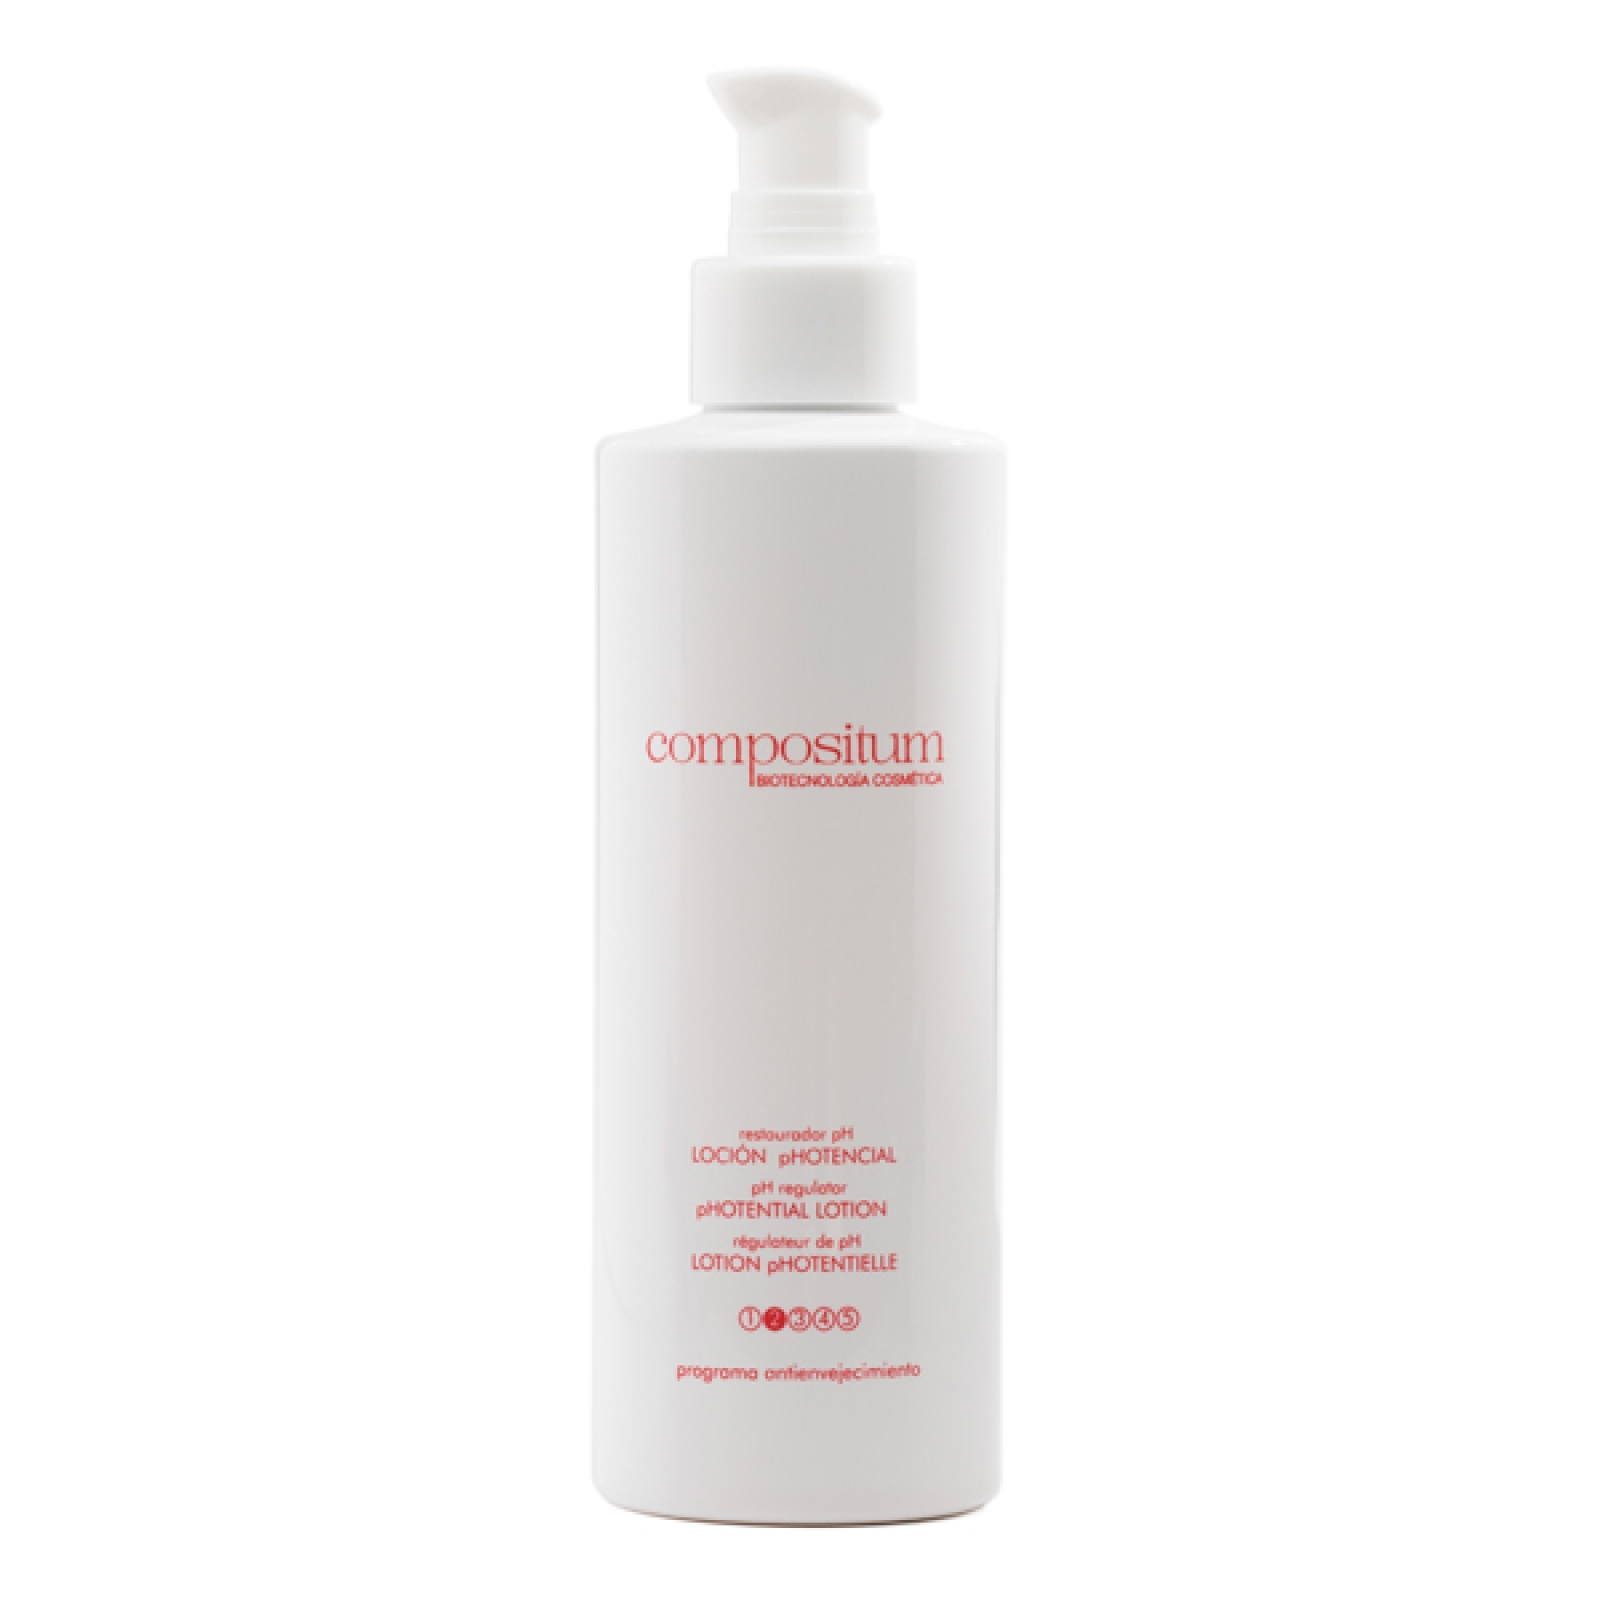 PHOTENTIAL LOTION